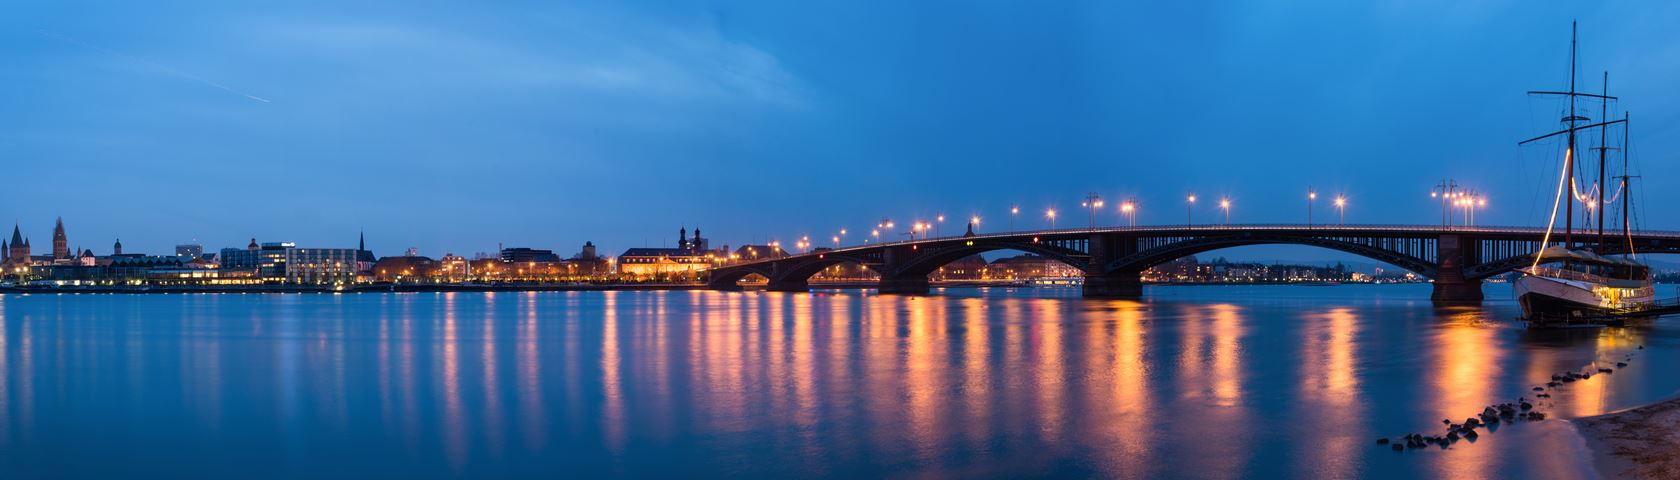 Theodor-Heuss Bridge